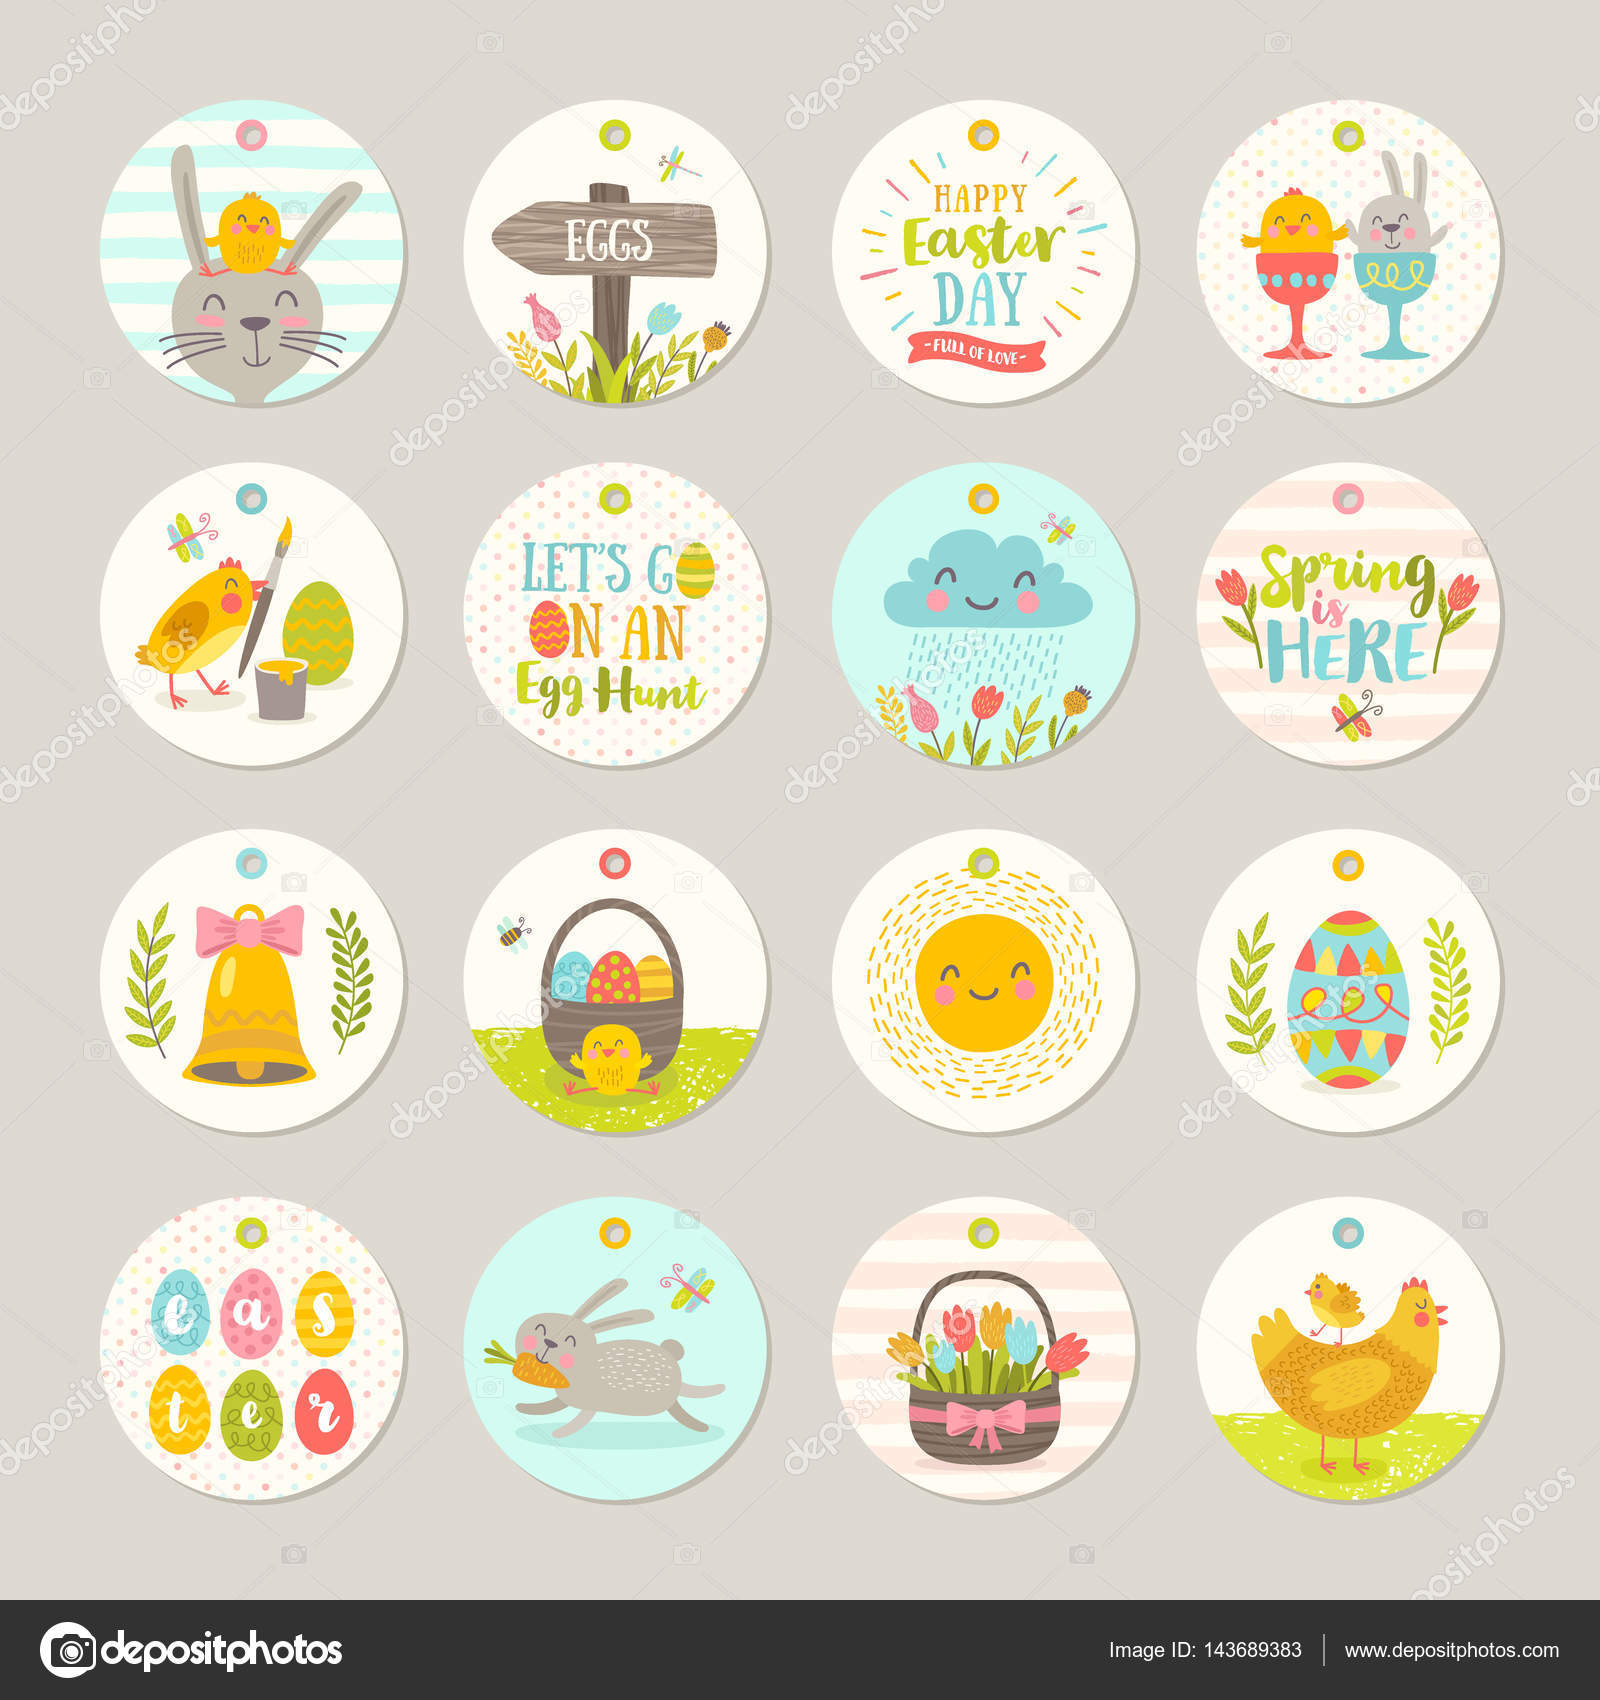 Set of easter gift tags and labels with cute cartoon characters set of easter gift tags and labels with cute cartoon characters and type design easter negle